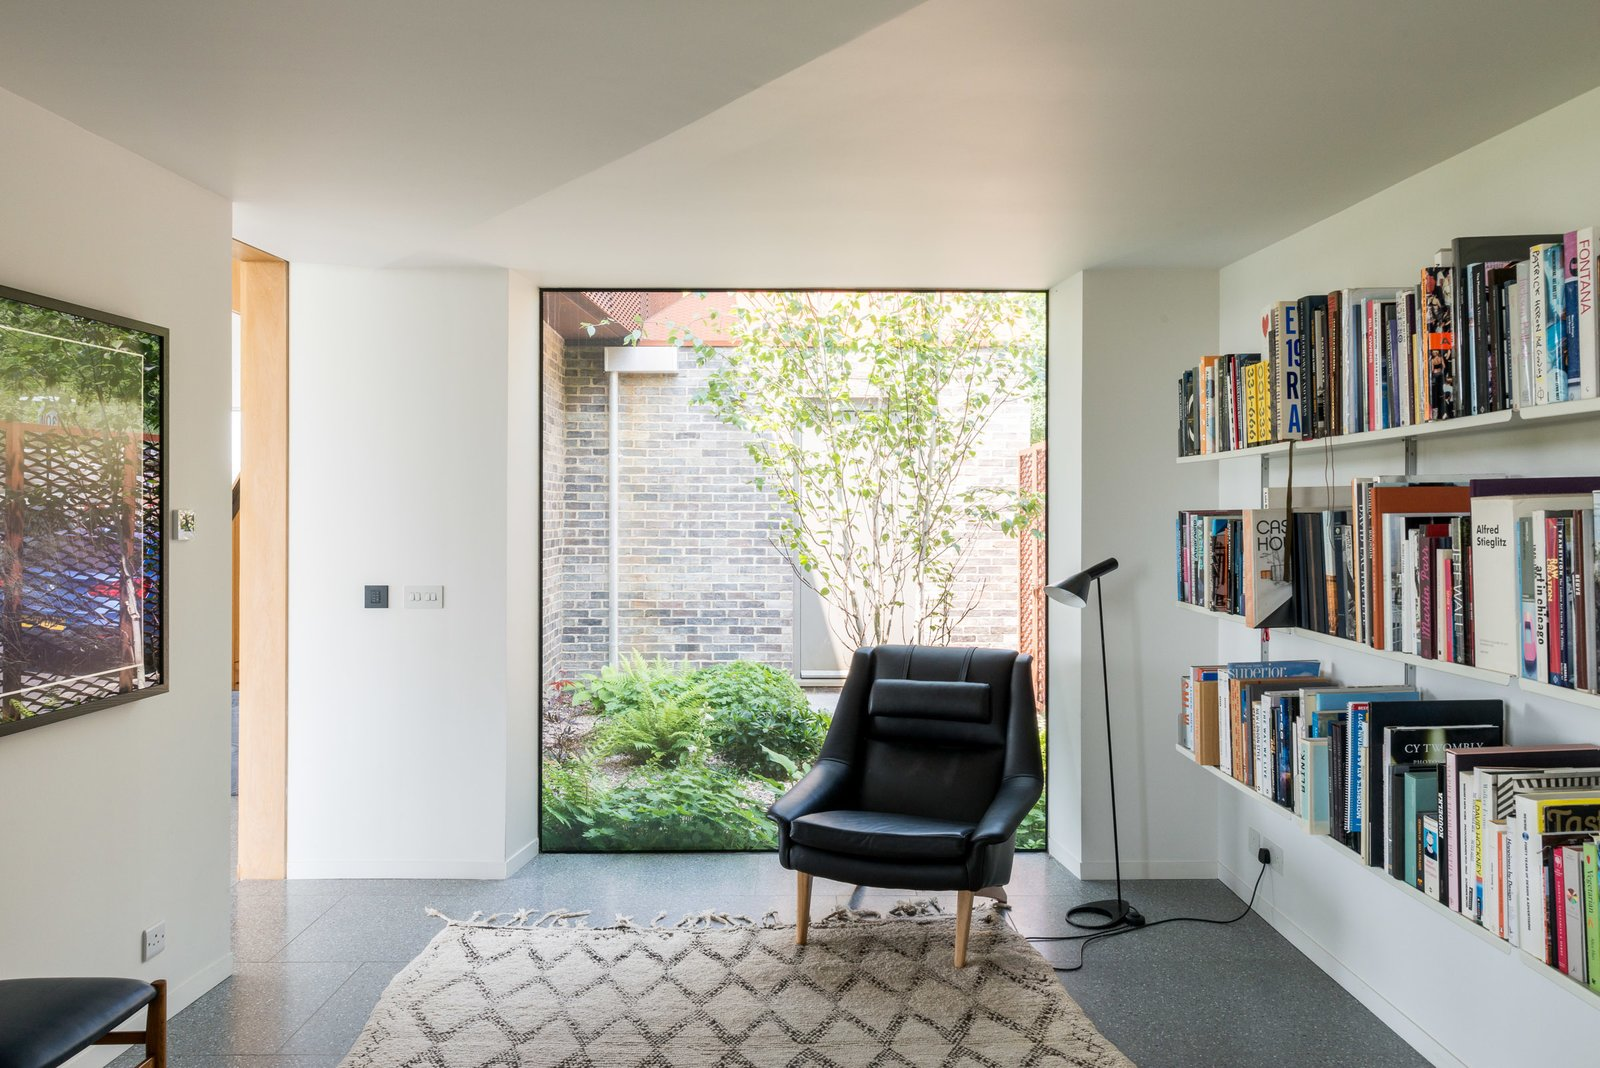 Office, Library Room Type, Chair, Lamps, and Terrazzo Floor  Photo 9 of 12 in Explore a Prefabricated House For Sale in England That's Clad With Cor-Ten Steel